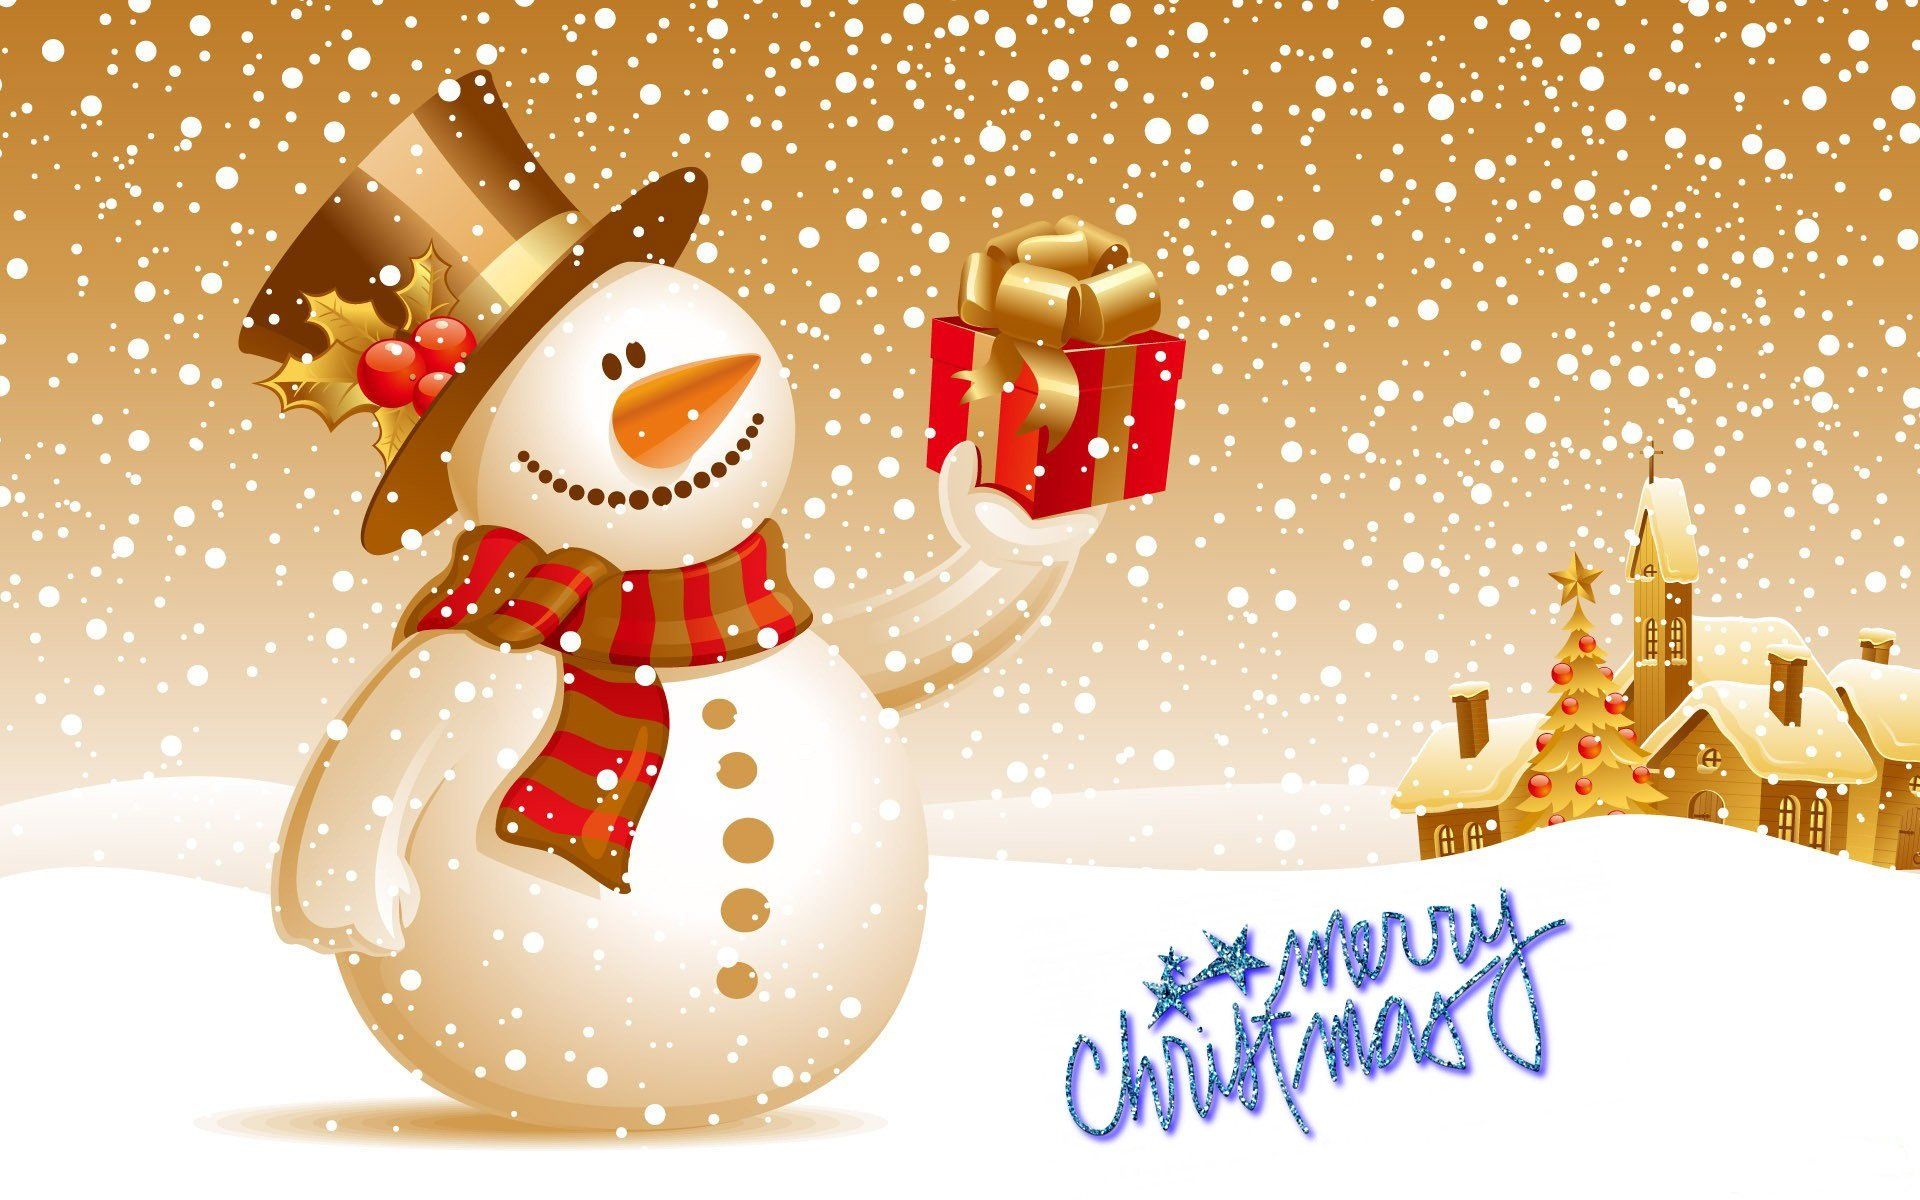 Merry Christmas Greetings Wallpapers Merry Christmas Greetings 1920x1200